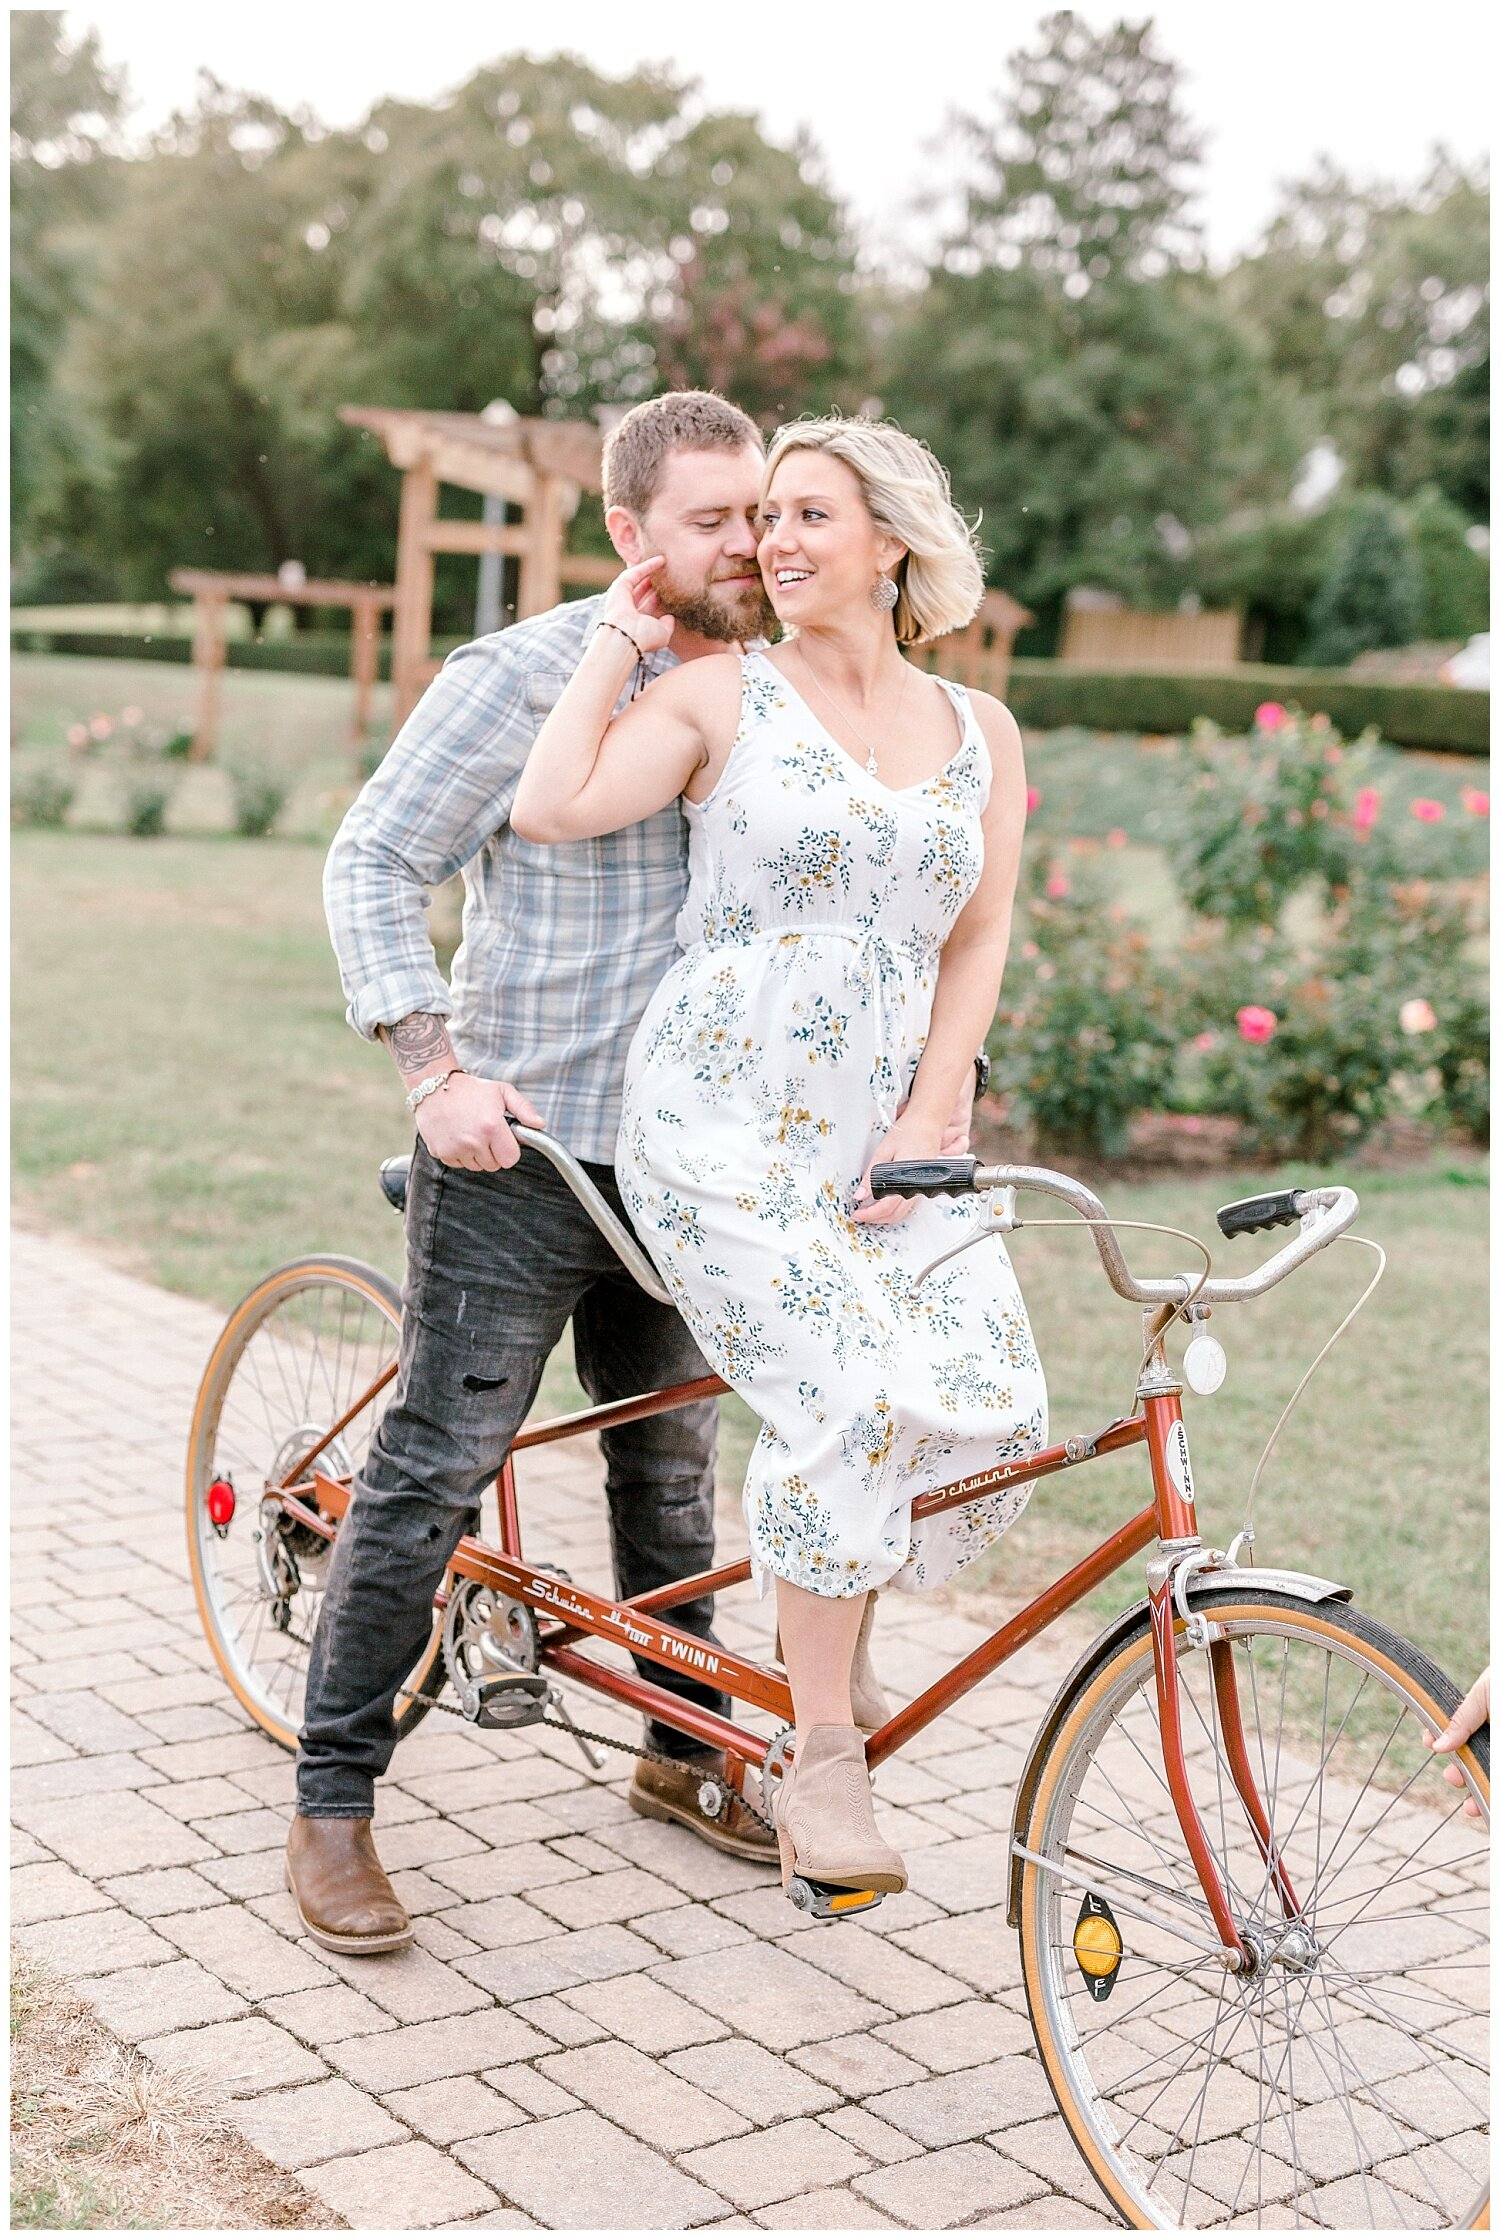 Allentown rose garden sunset engagement session with a tandem bike by lehigh valley pennsylvania based wedding and lifestyle photographer Jeannie Lytle of Lytle Photography Company_0008.jpg